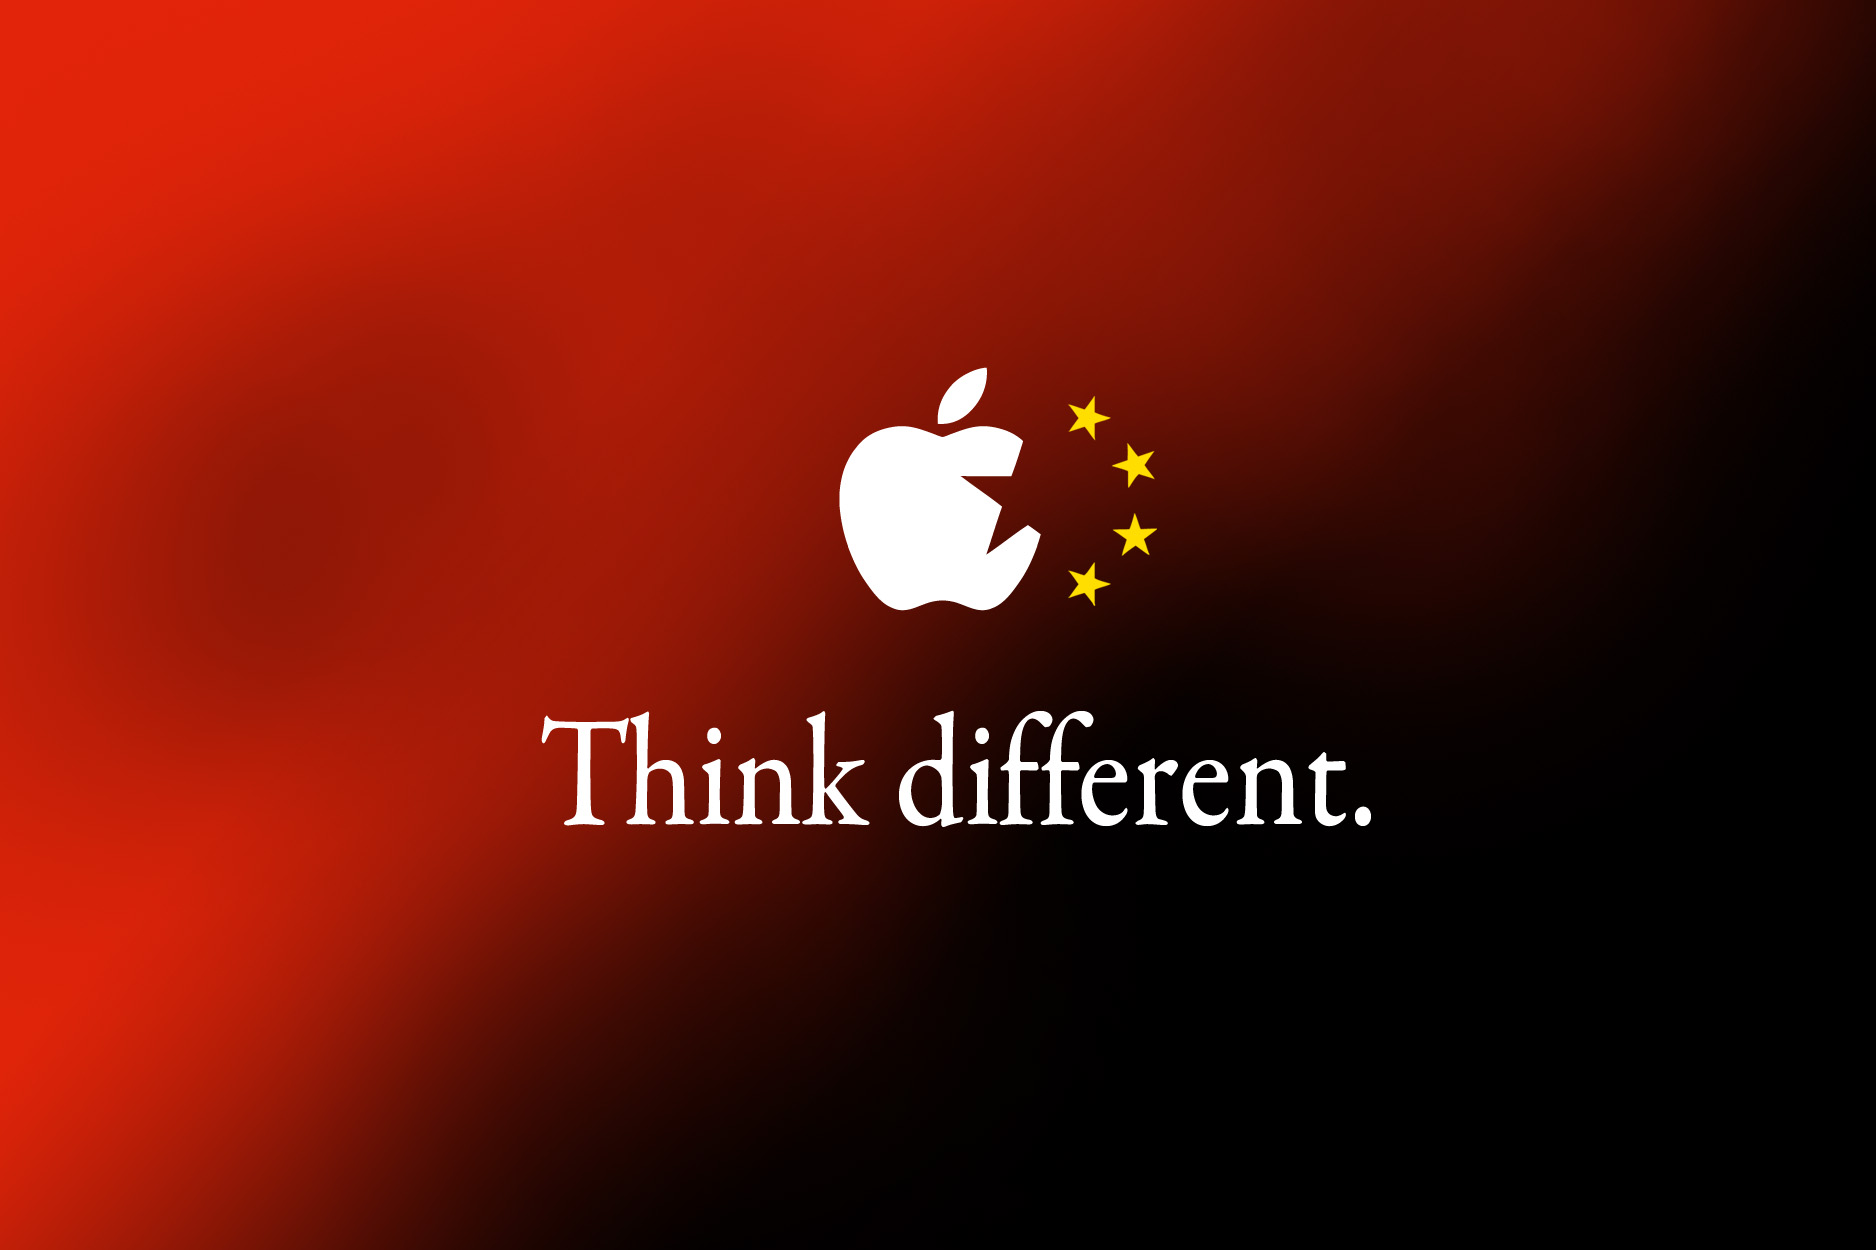 Bandeira - China/Apple